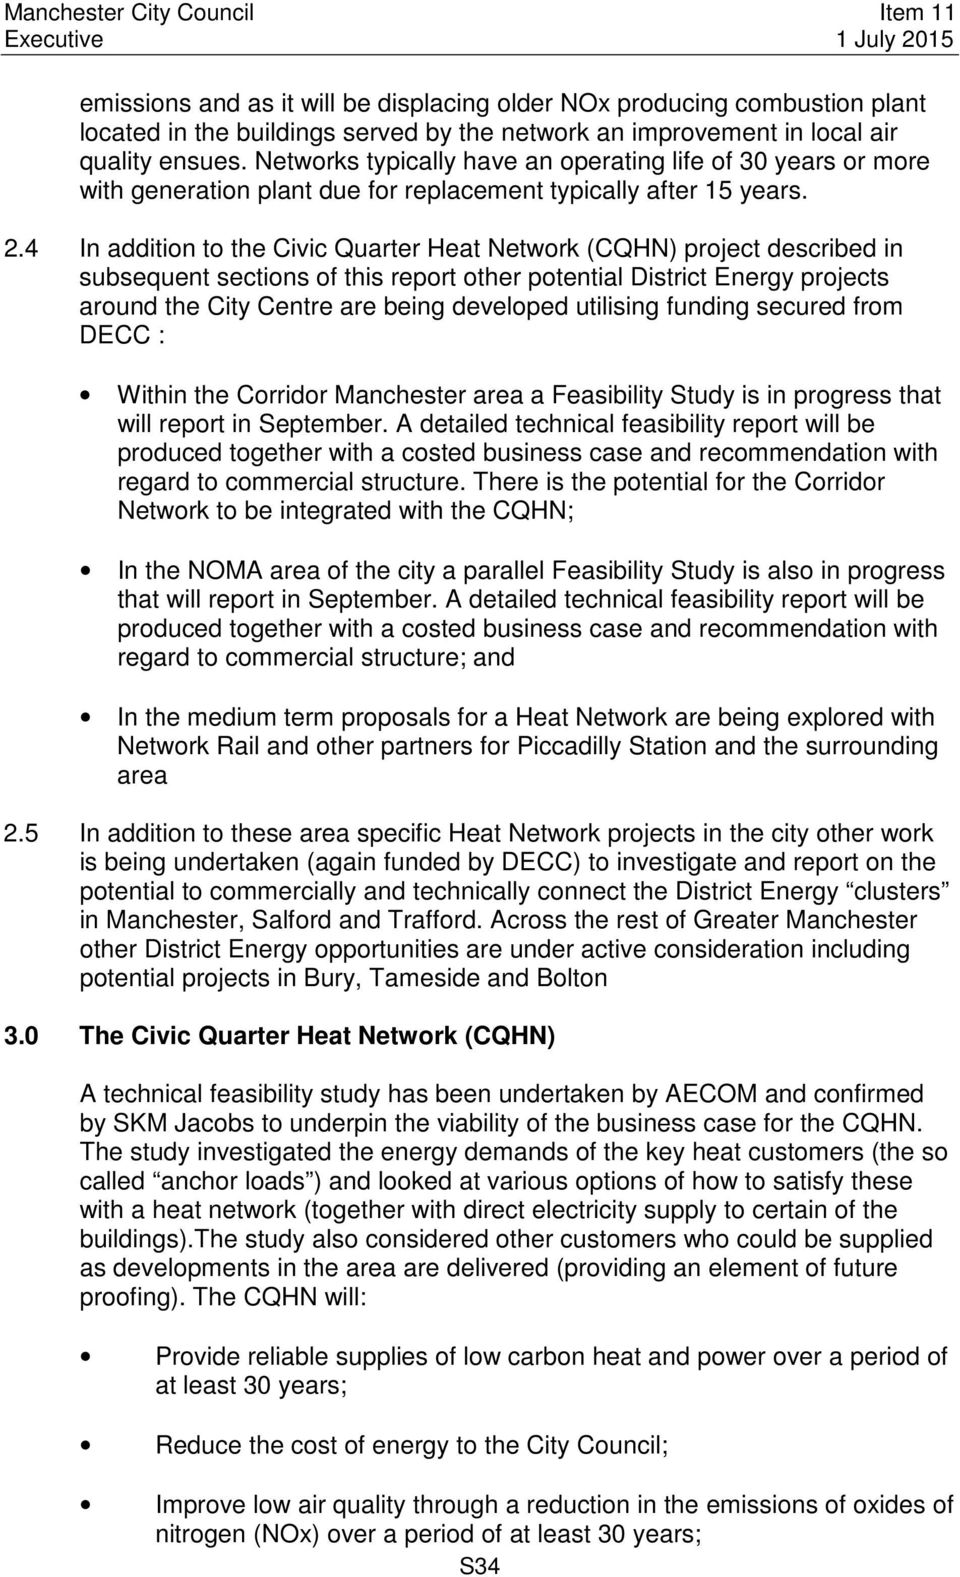 4 In addition to the Civic Quarter Heat Network (CQHN) project described in subsequent sections of this report other potential District Energy projects around the City Centre are being developed